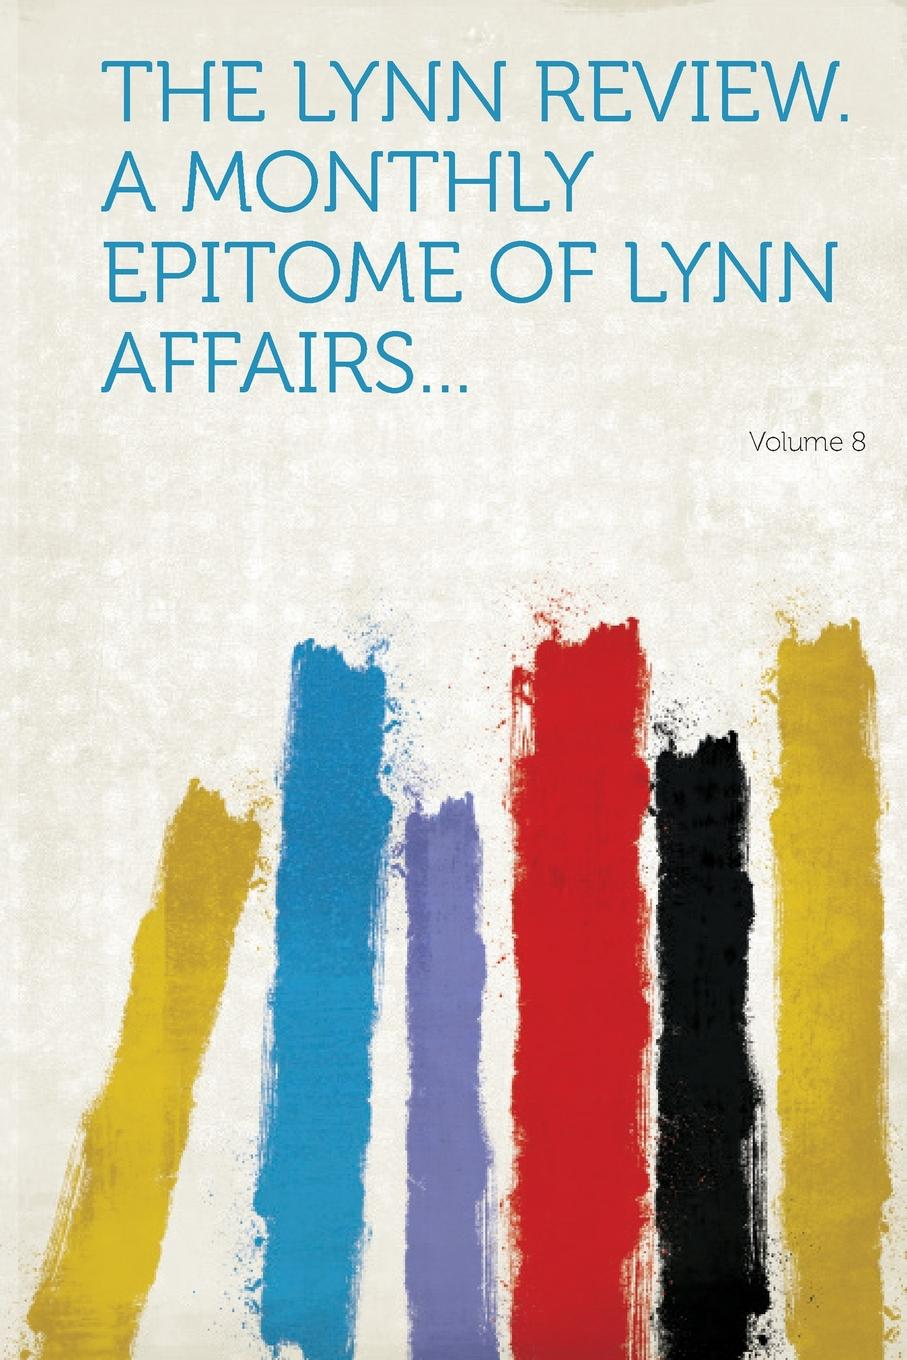 The Lynn Review. a Monthly Epitome of Lynn Affairs... Volume 8